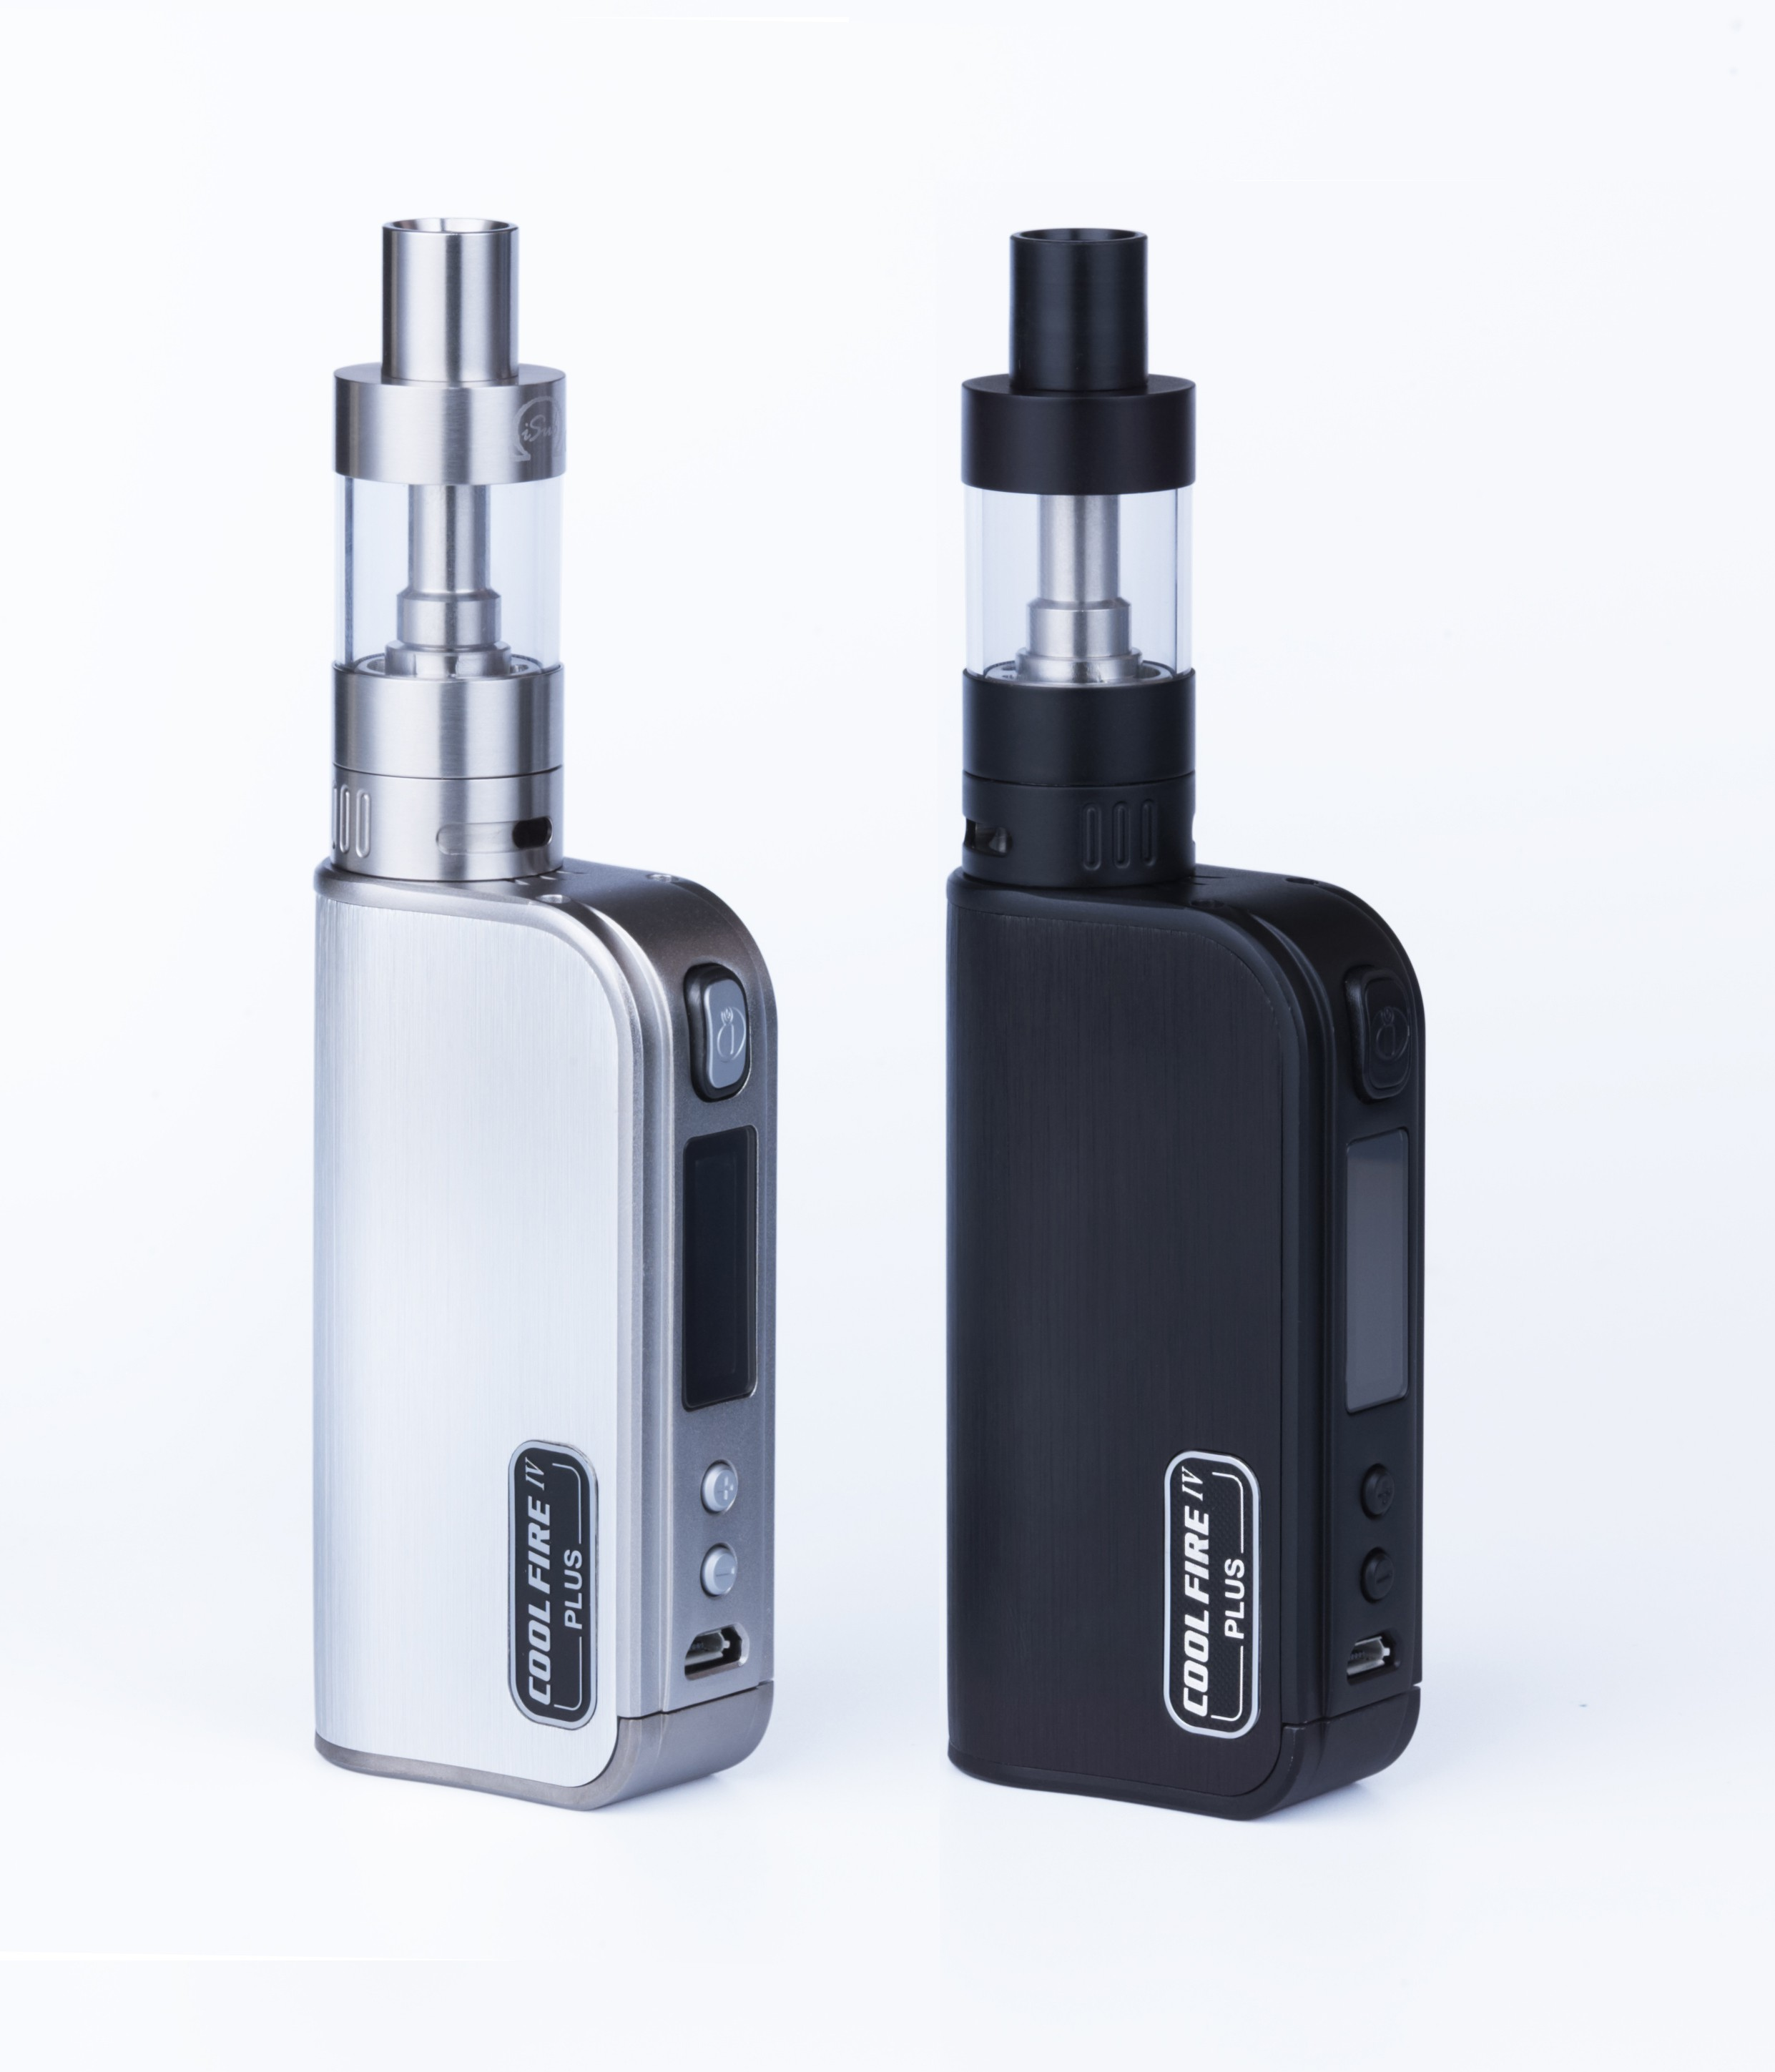 Innokin Coolfire Iv Plus Starter Kit 70 Watts Avv